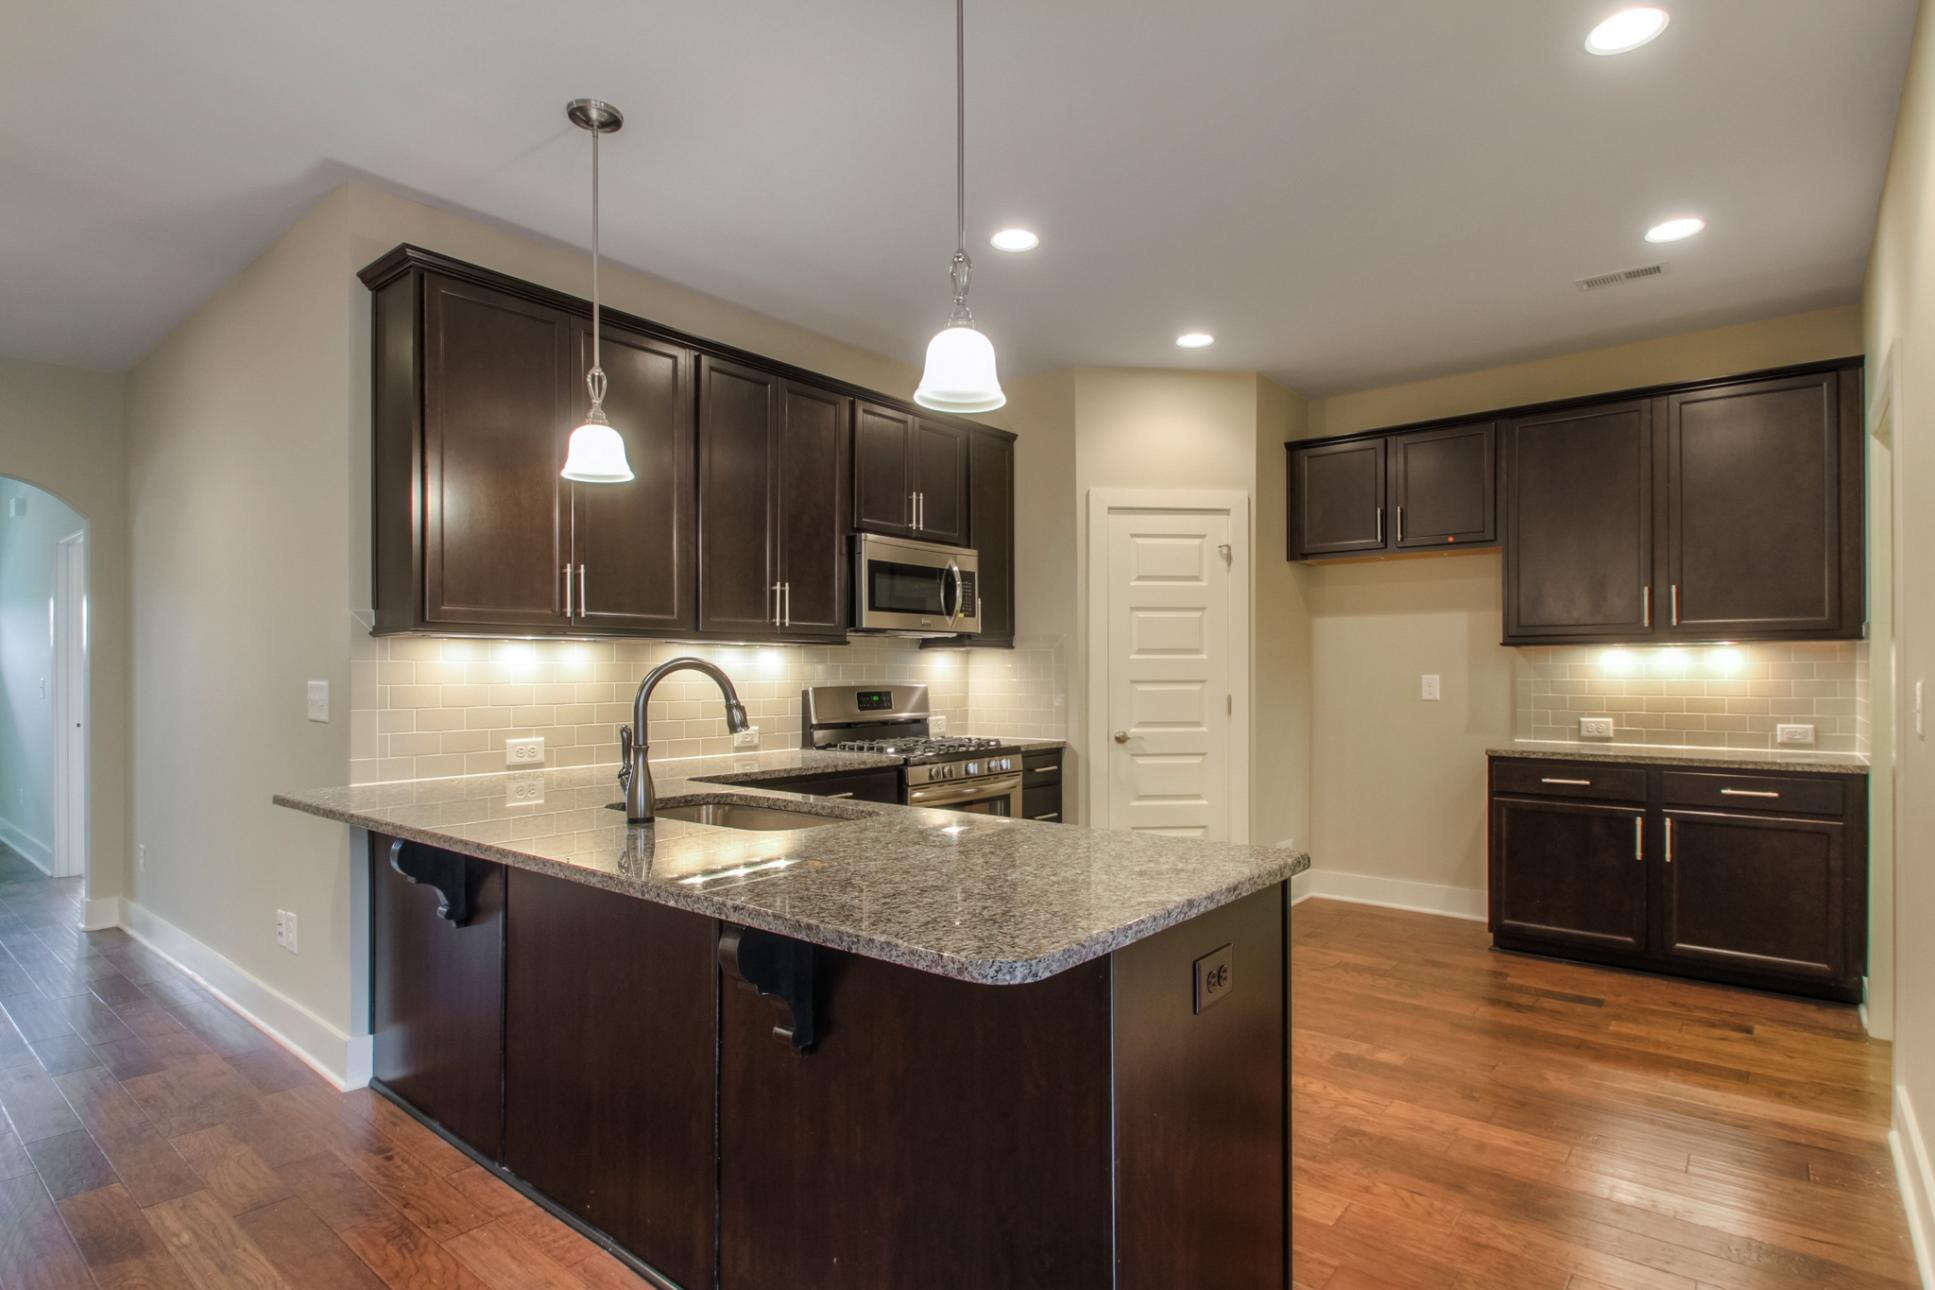 Kitchen featured in The Waverleigh Courtyard Cottage By Goodall Homes in Knoxville, TN